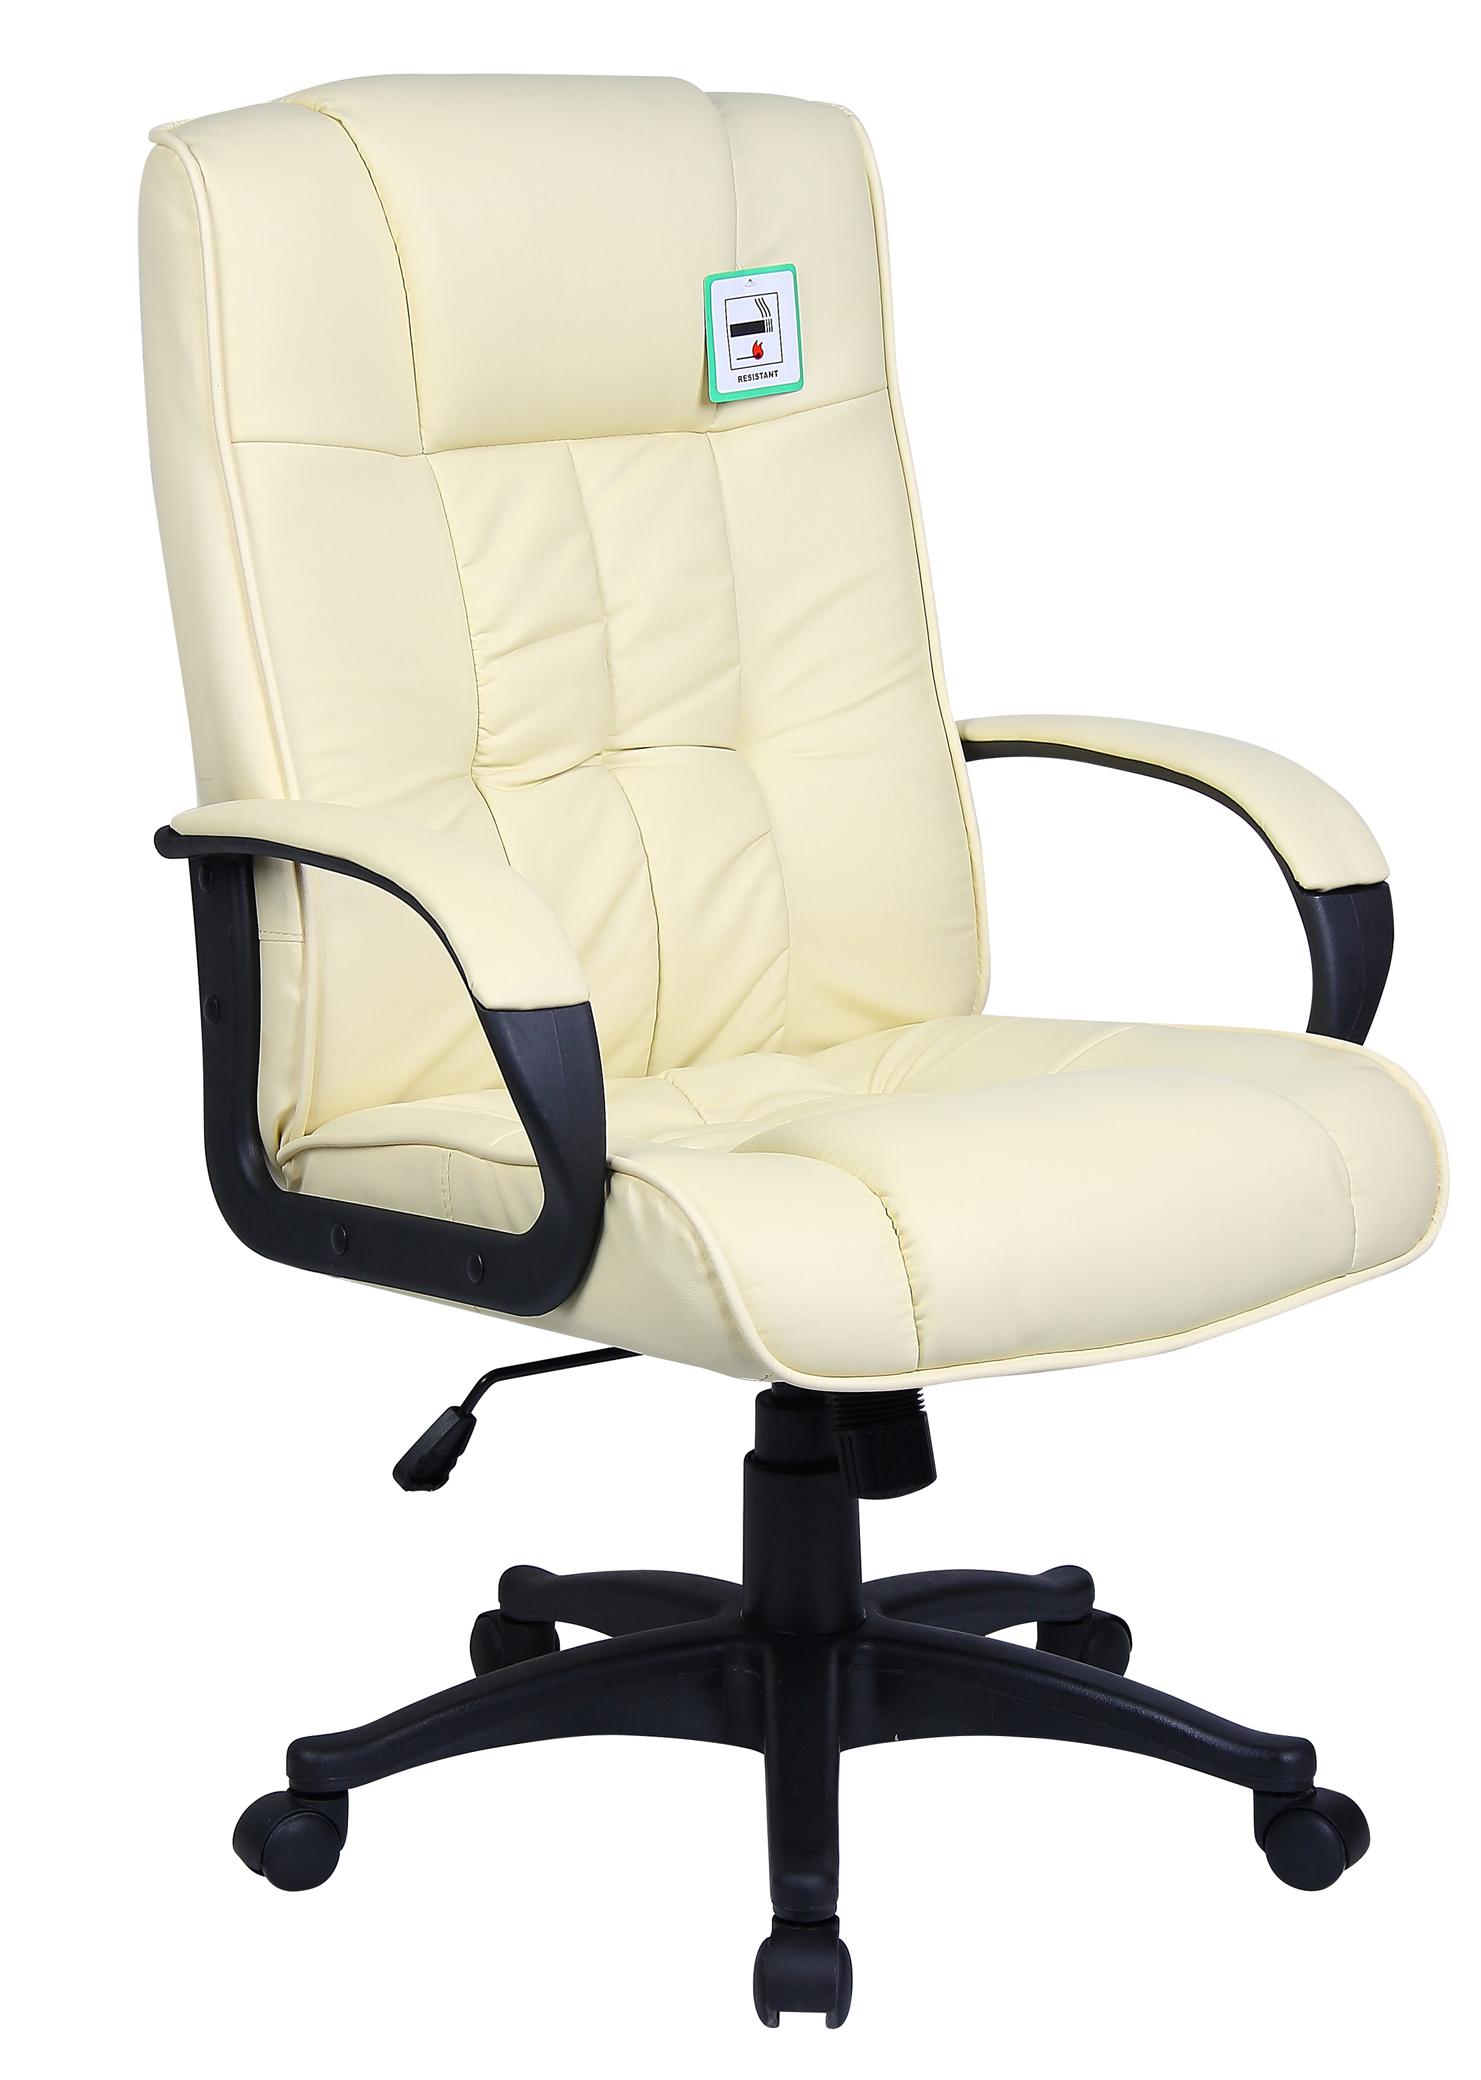 New Swivel Executive Office Furniture Computer Desk Office Chair In PU Leathe